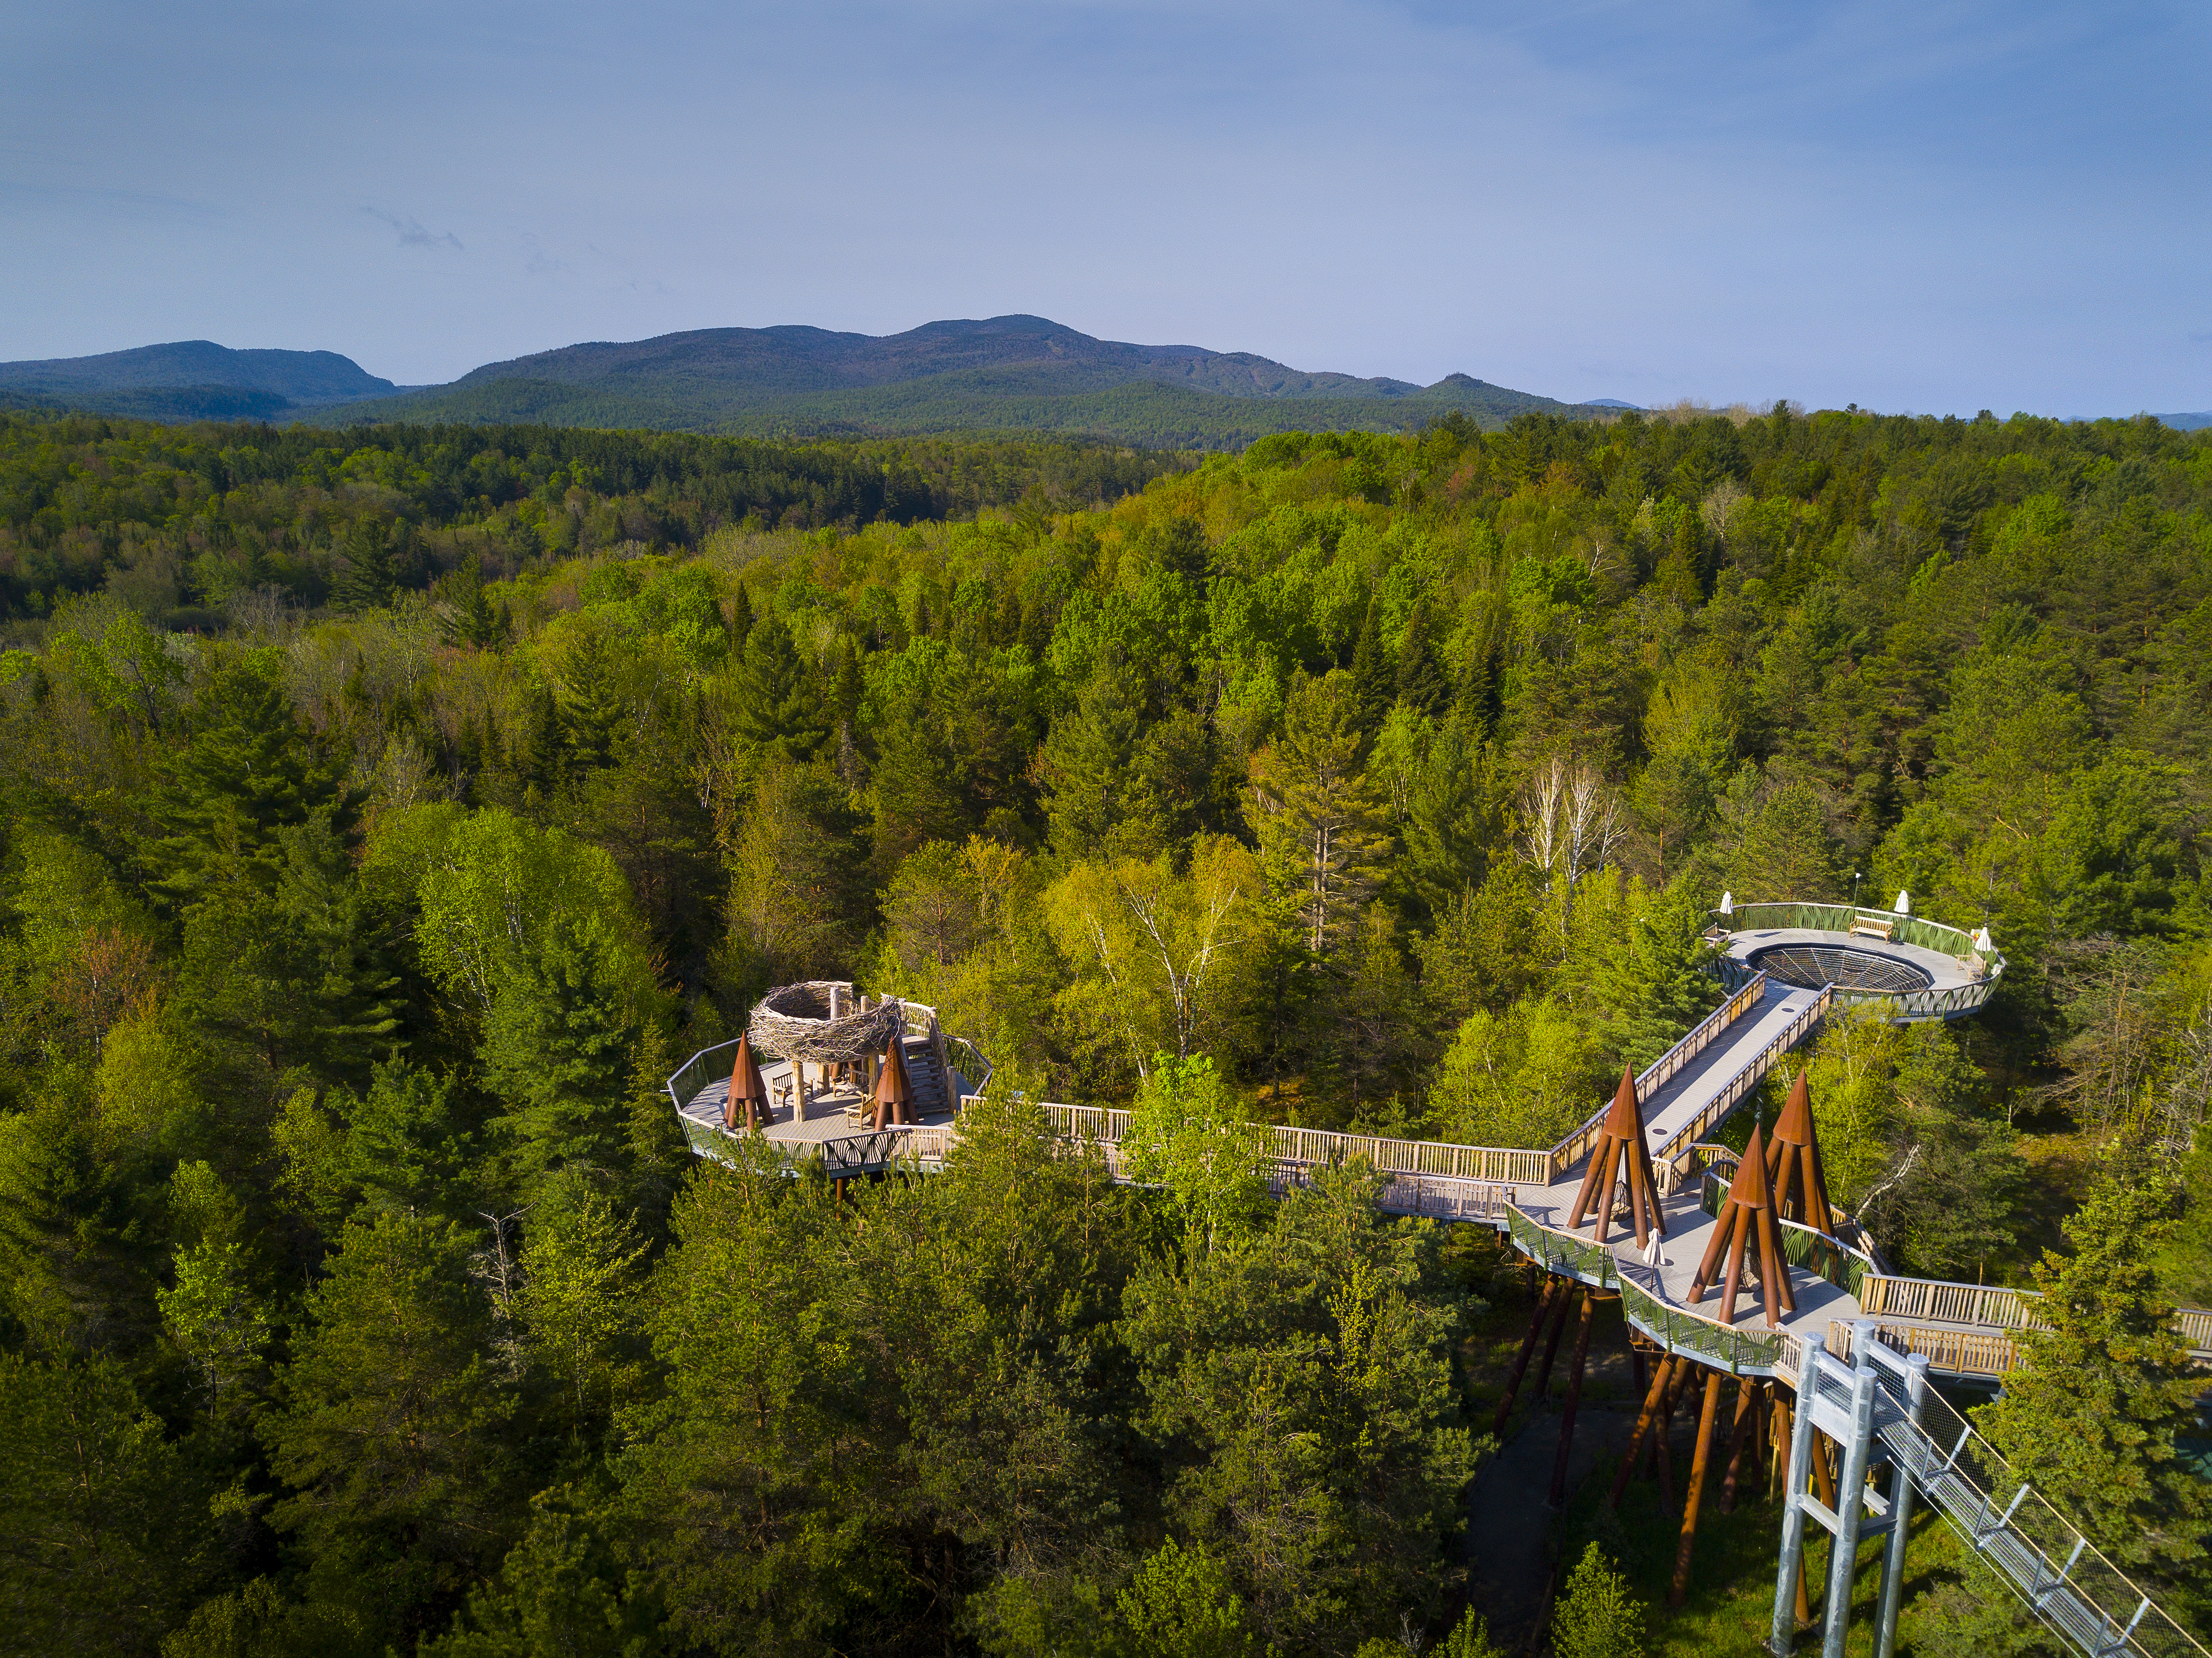 An aerial view of the Wild Walk, forest, and mountains beyond.